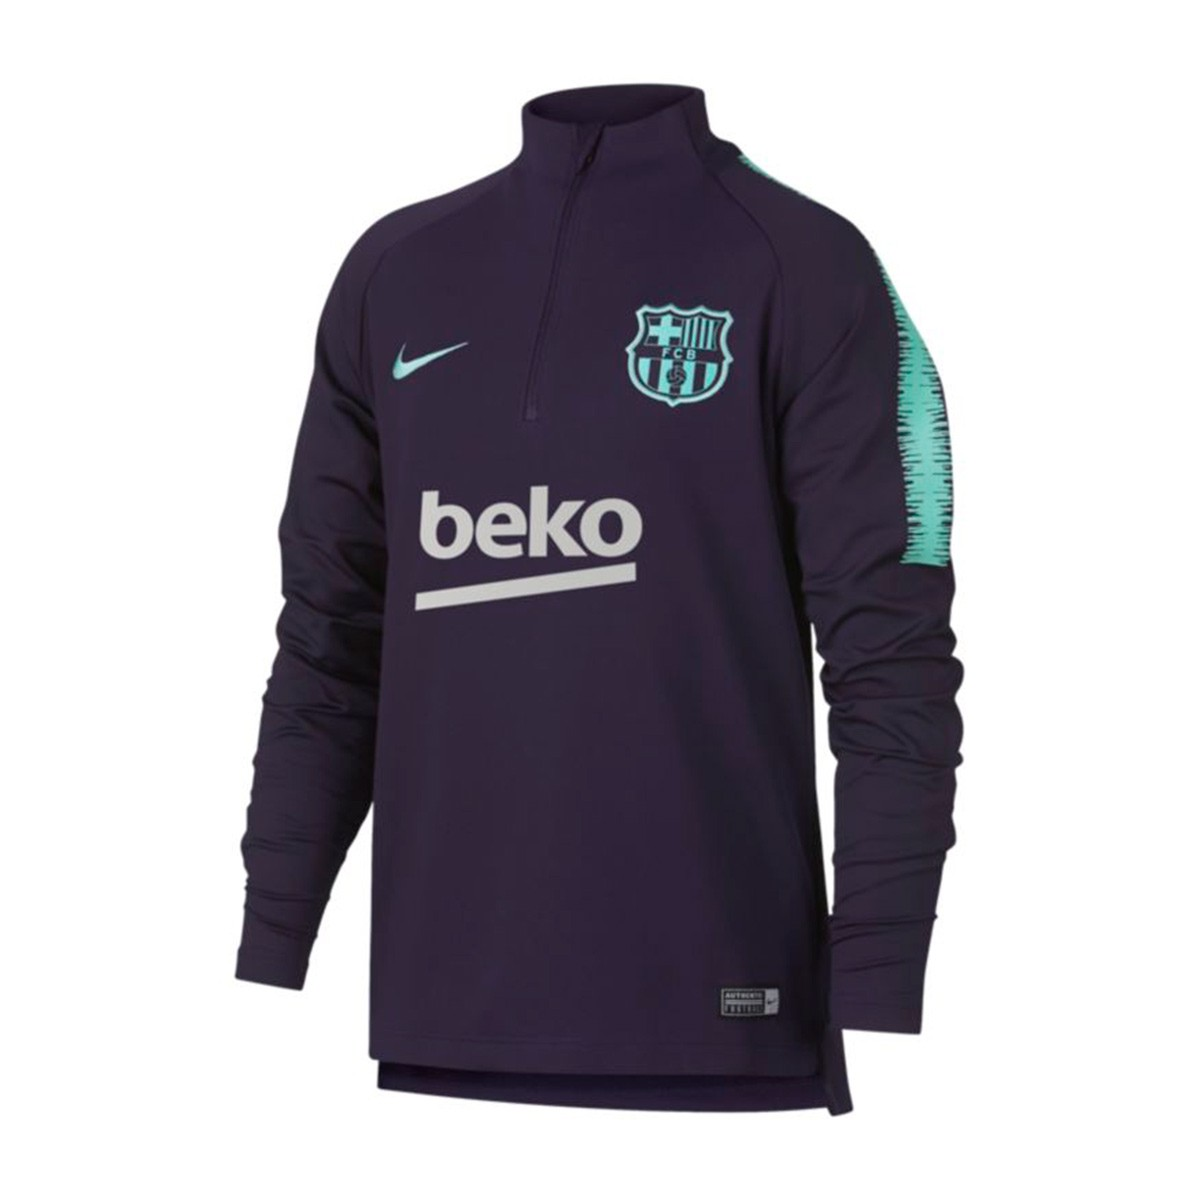 1a3da92368514 Sweatshirt Nike Kids FC Barcelona Dry Squad 2018-2019 Purple dynasty-Hyper  turquoise - Football store Fútbol Emotion